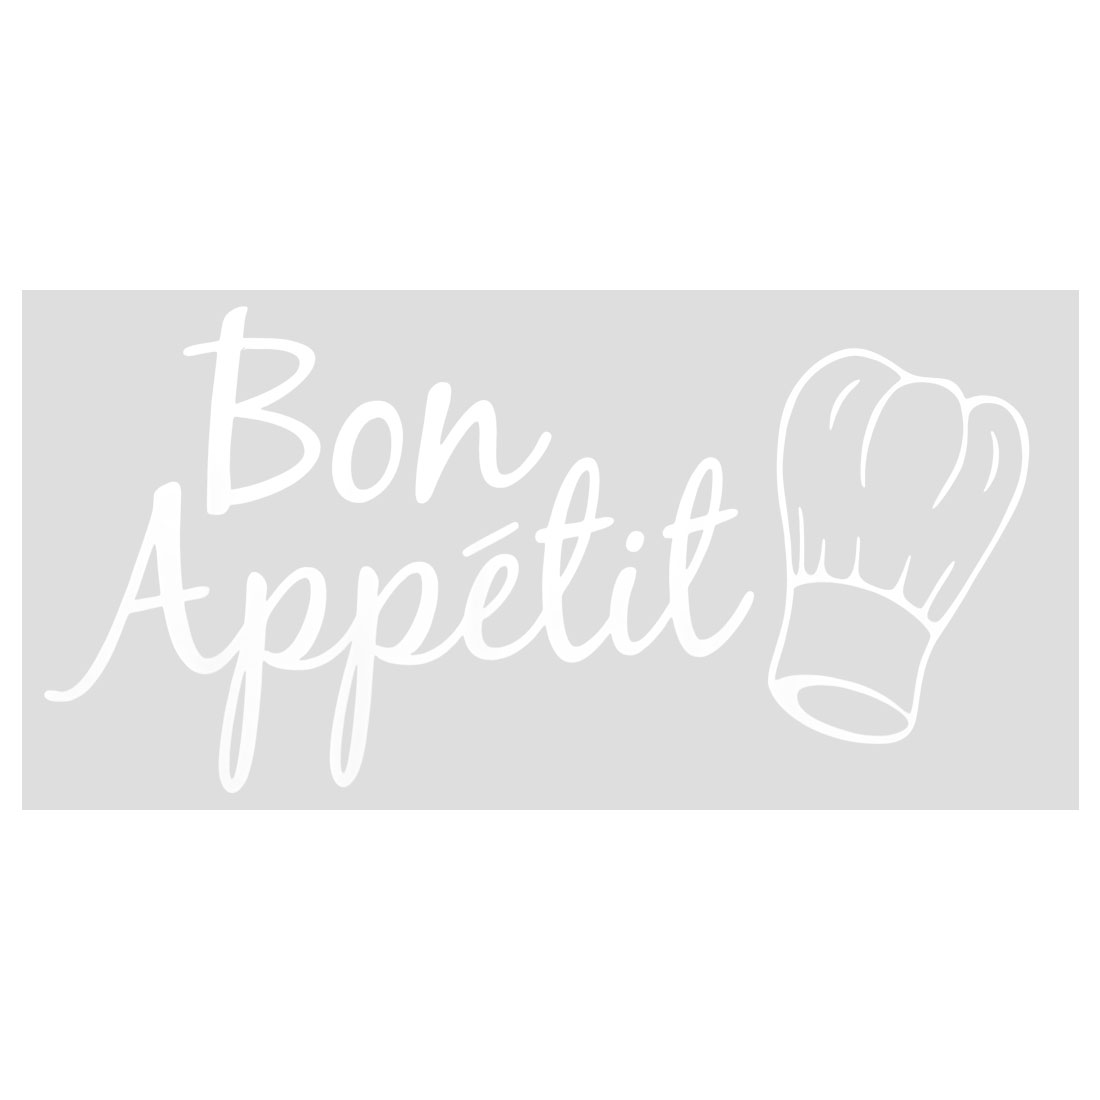 White Great Appetite Artificial Wall Sticker Self-stick Decal for Dining Room